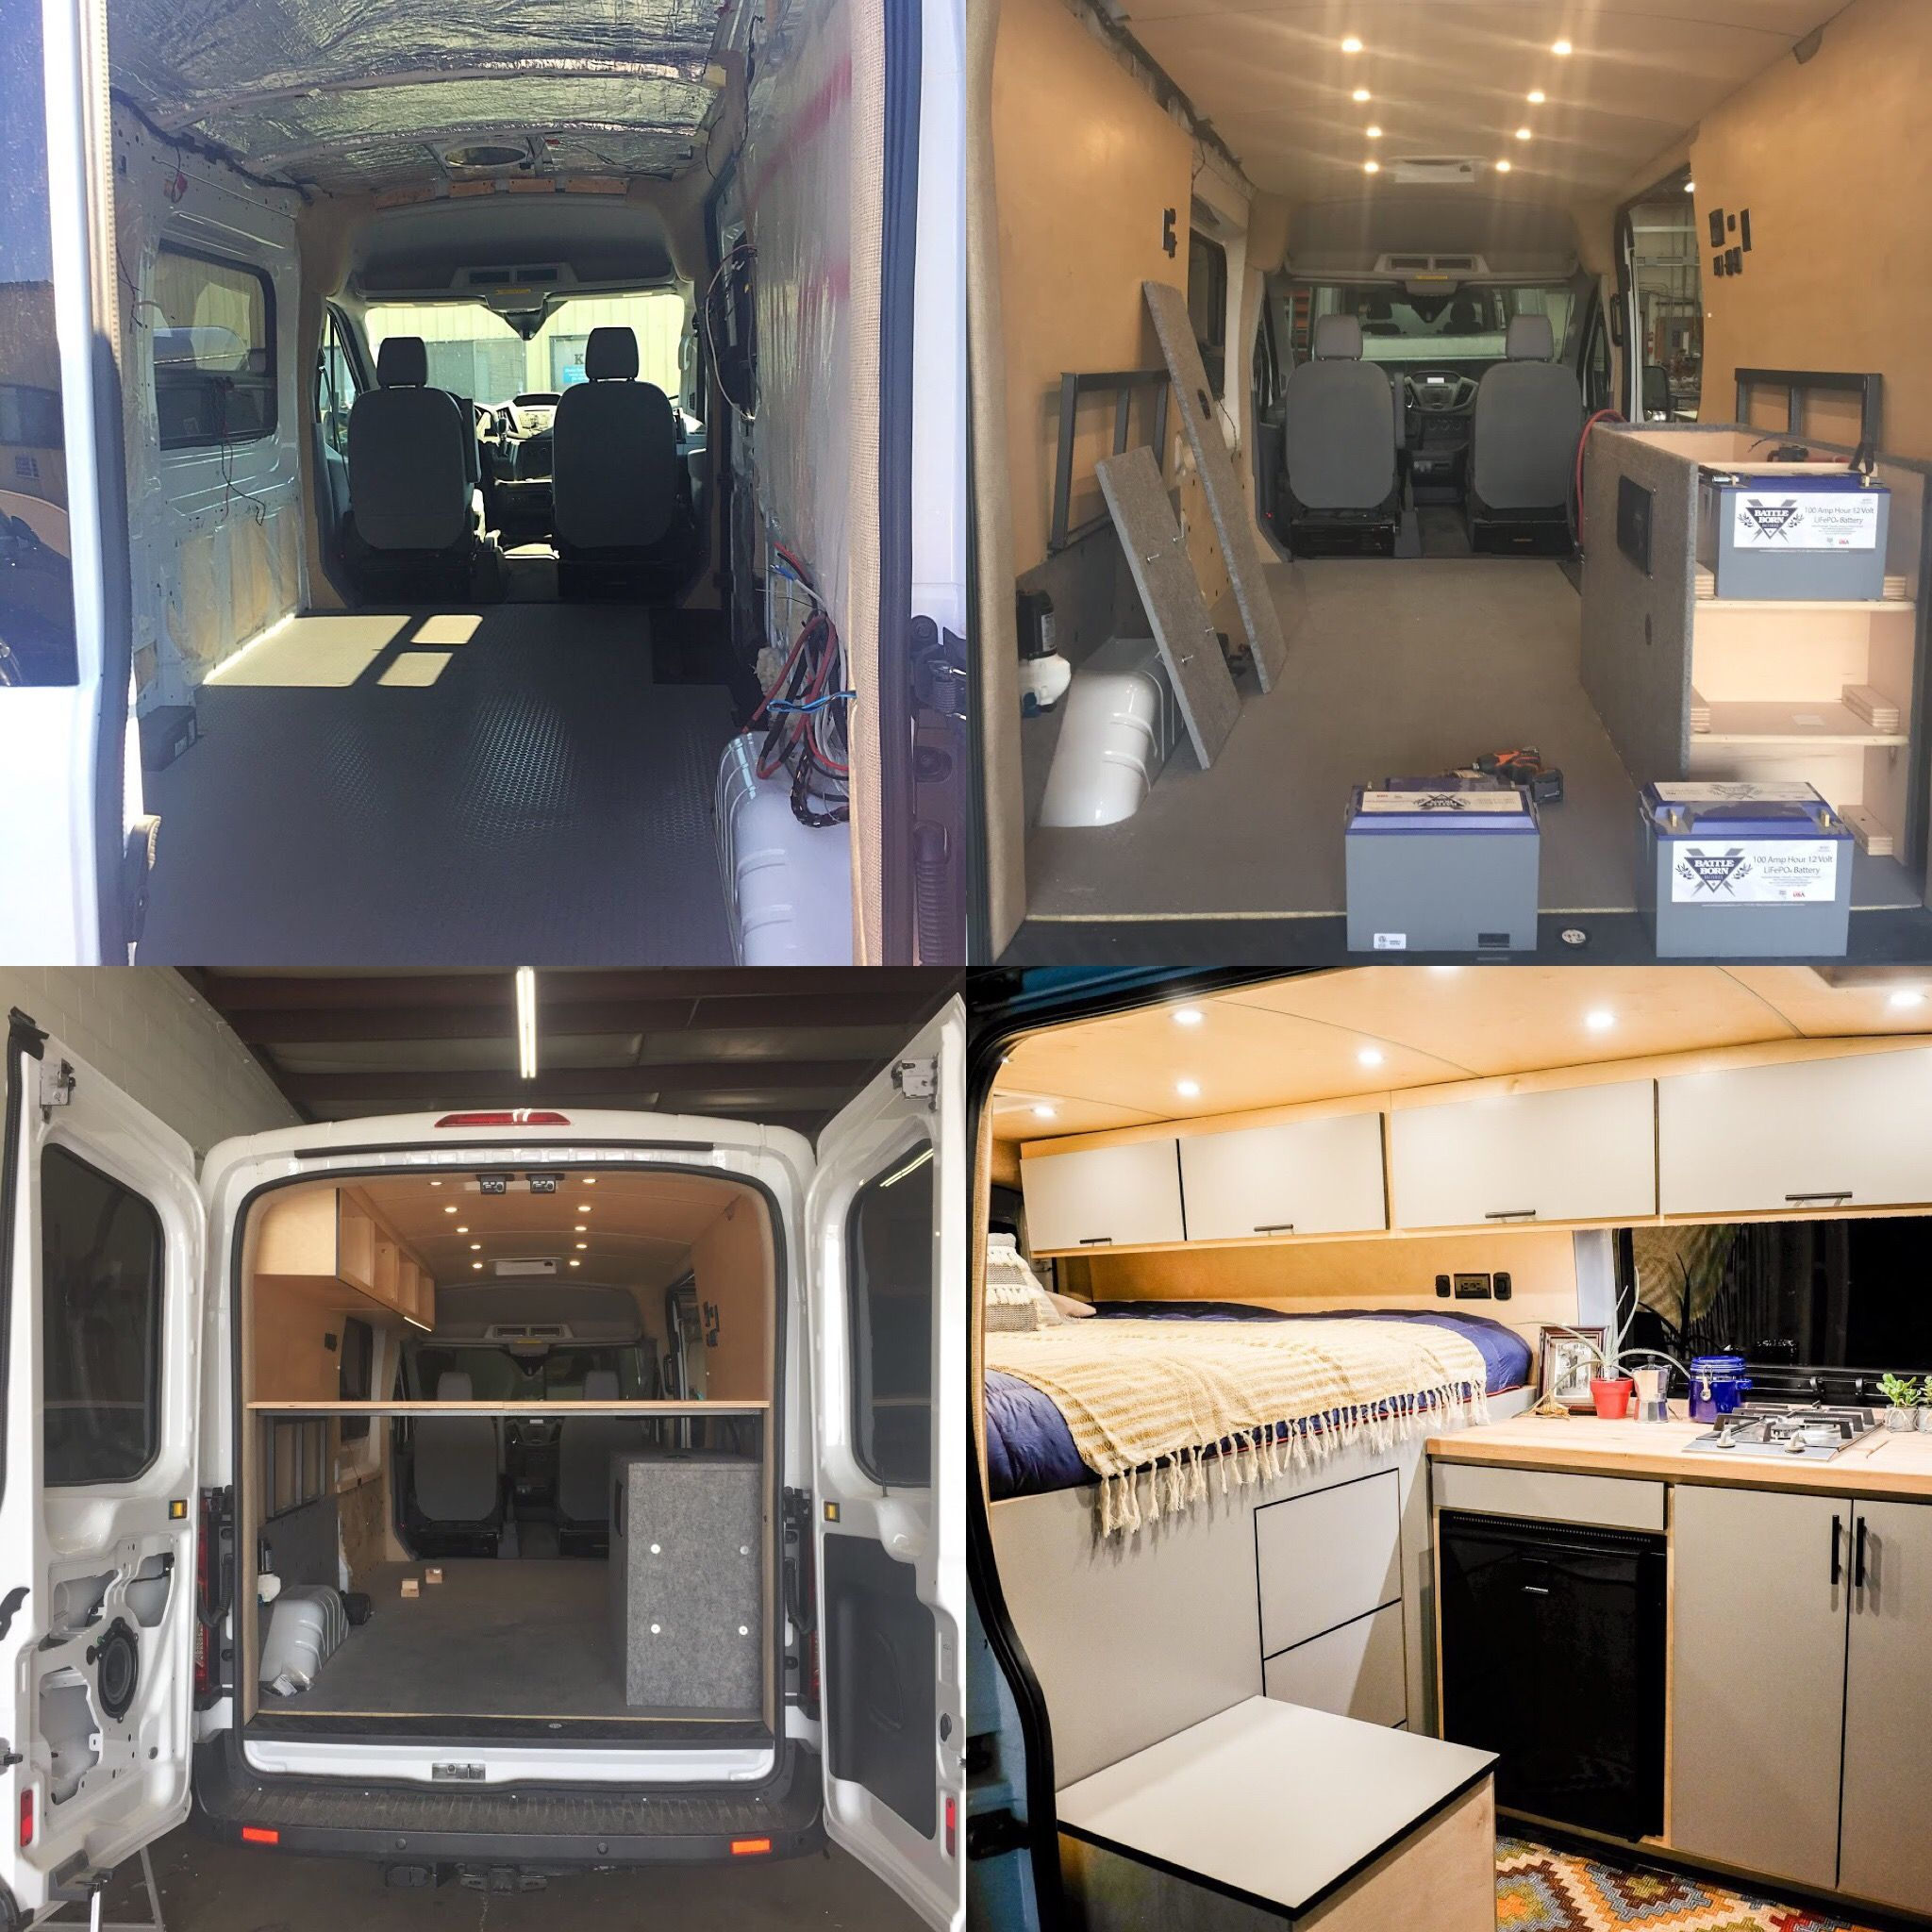 Vanlife Customs Transit Camper Van Conversion Before And After